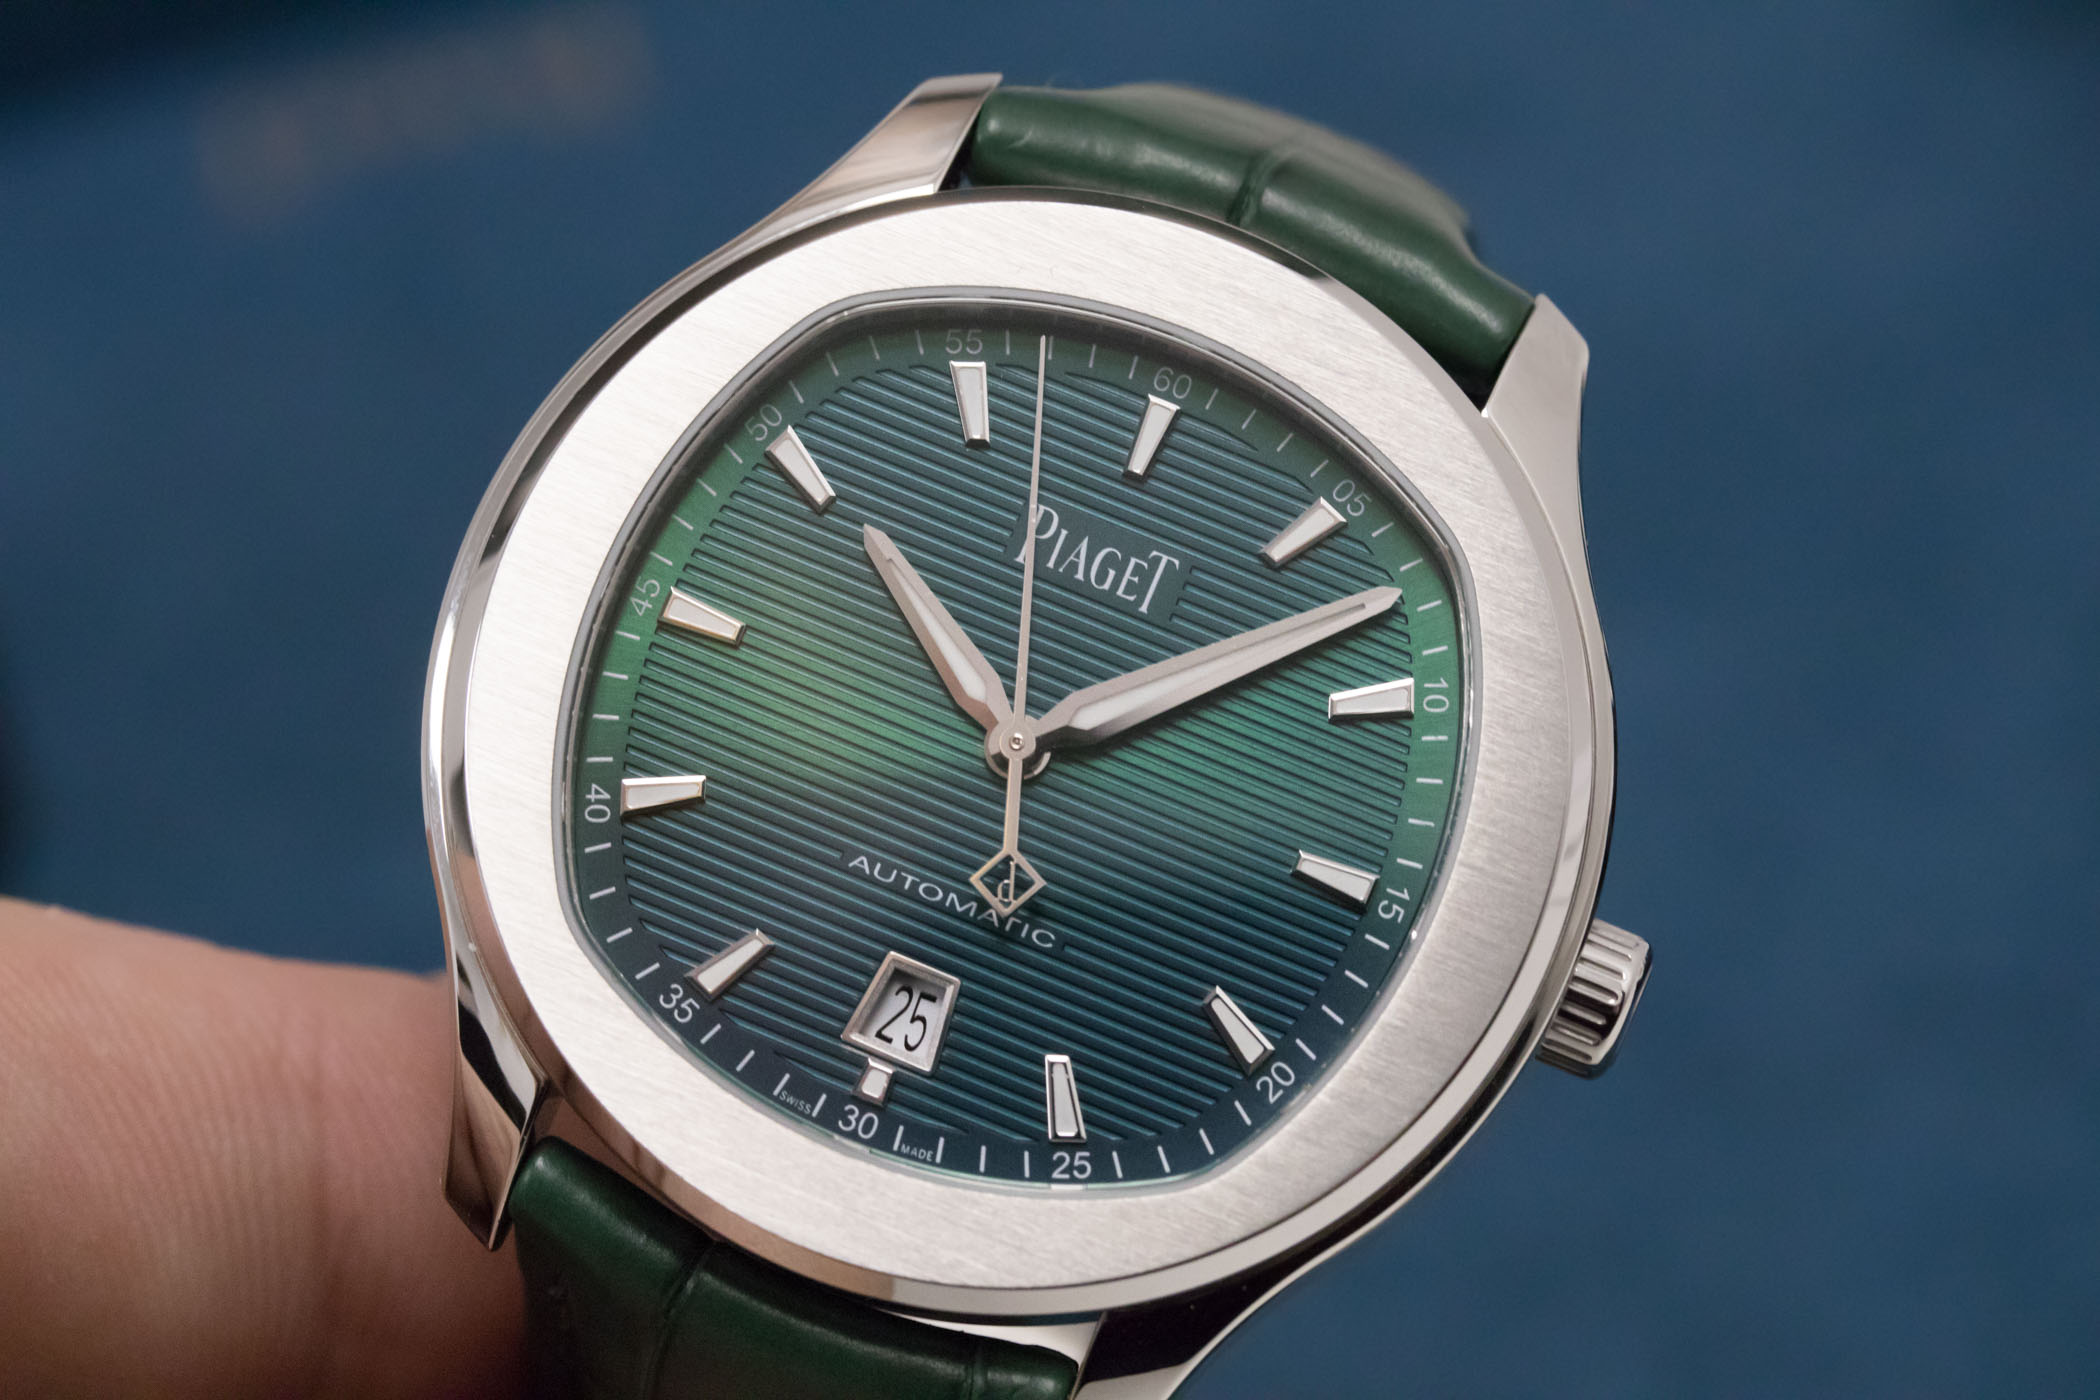 Piaget Polo S Green Dial - SIHH 2019 review - 8